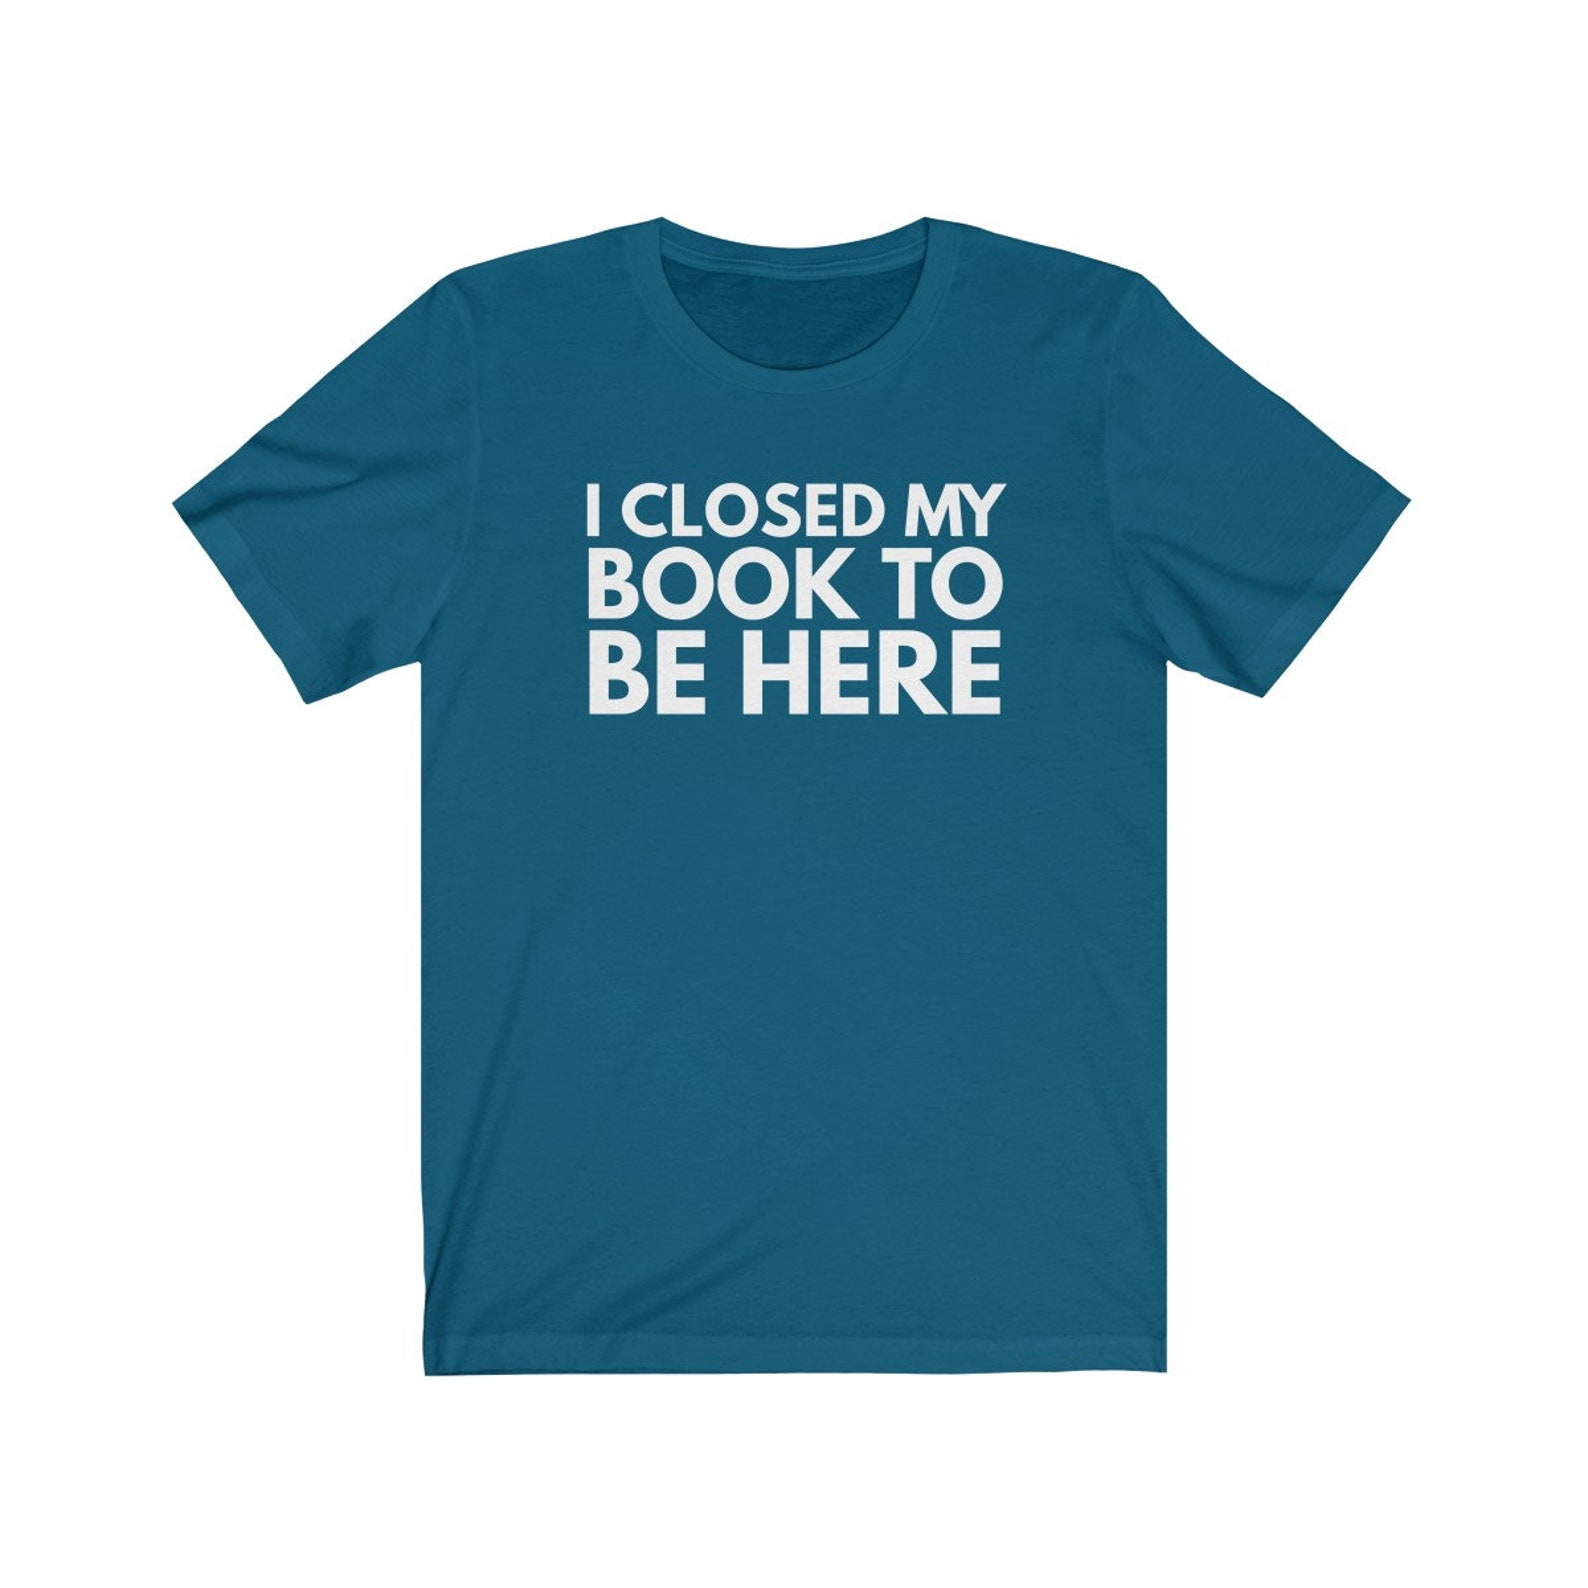 I Close My Book to Be Here t-shirt